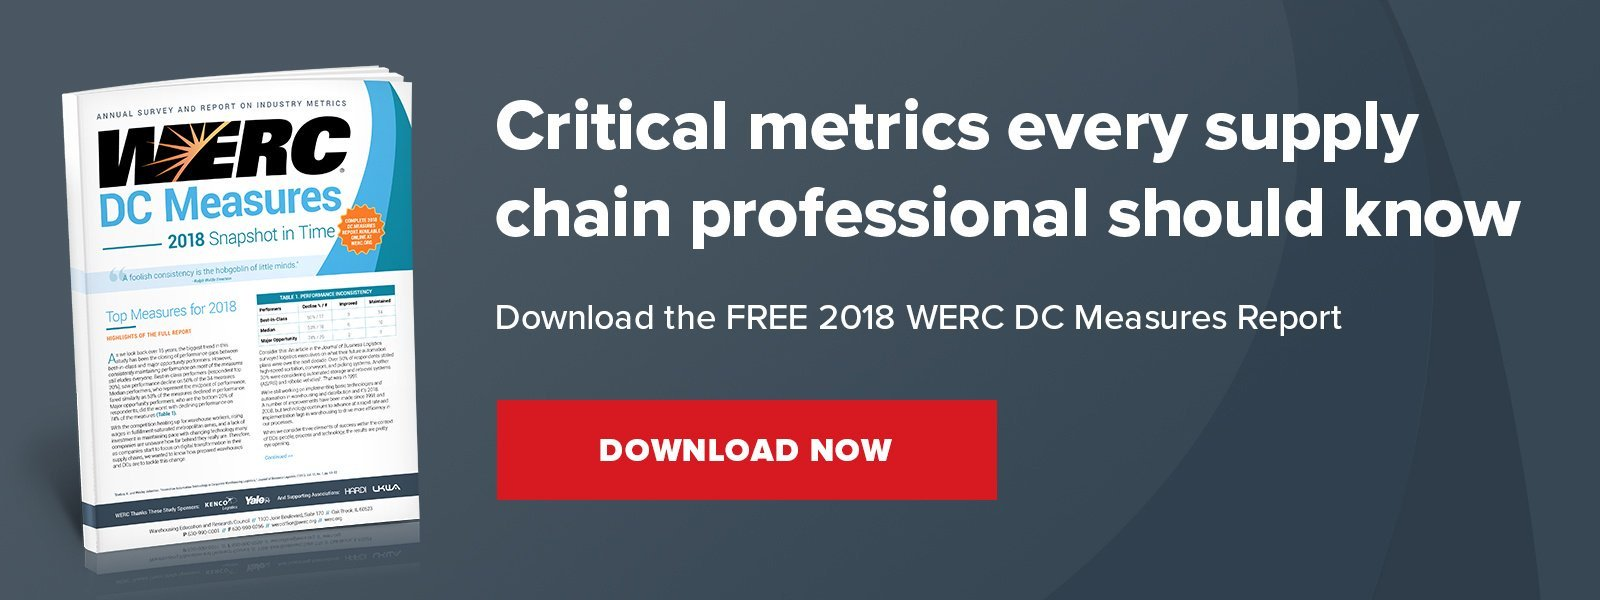 download the werc 2018 warehouse metrics report